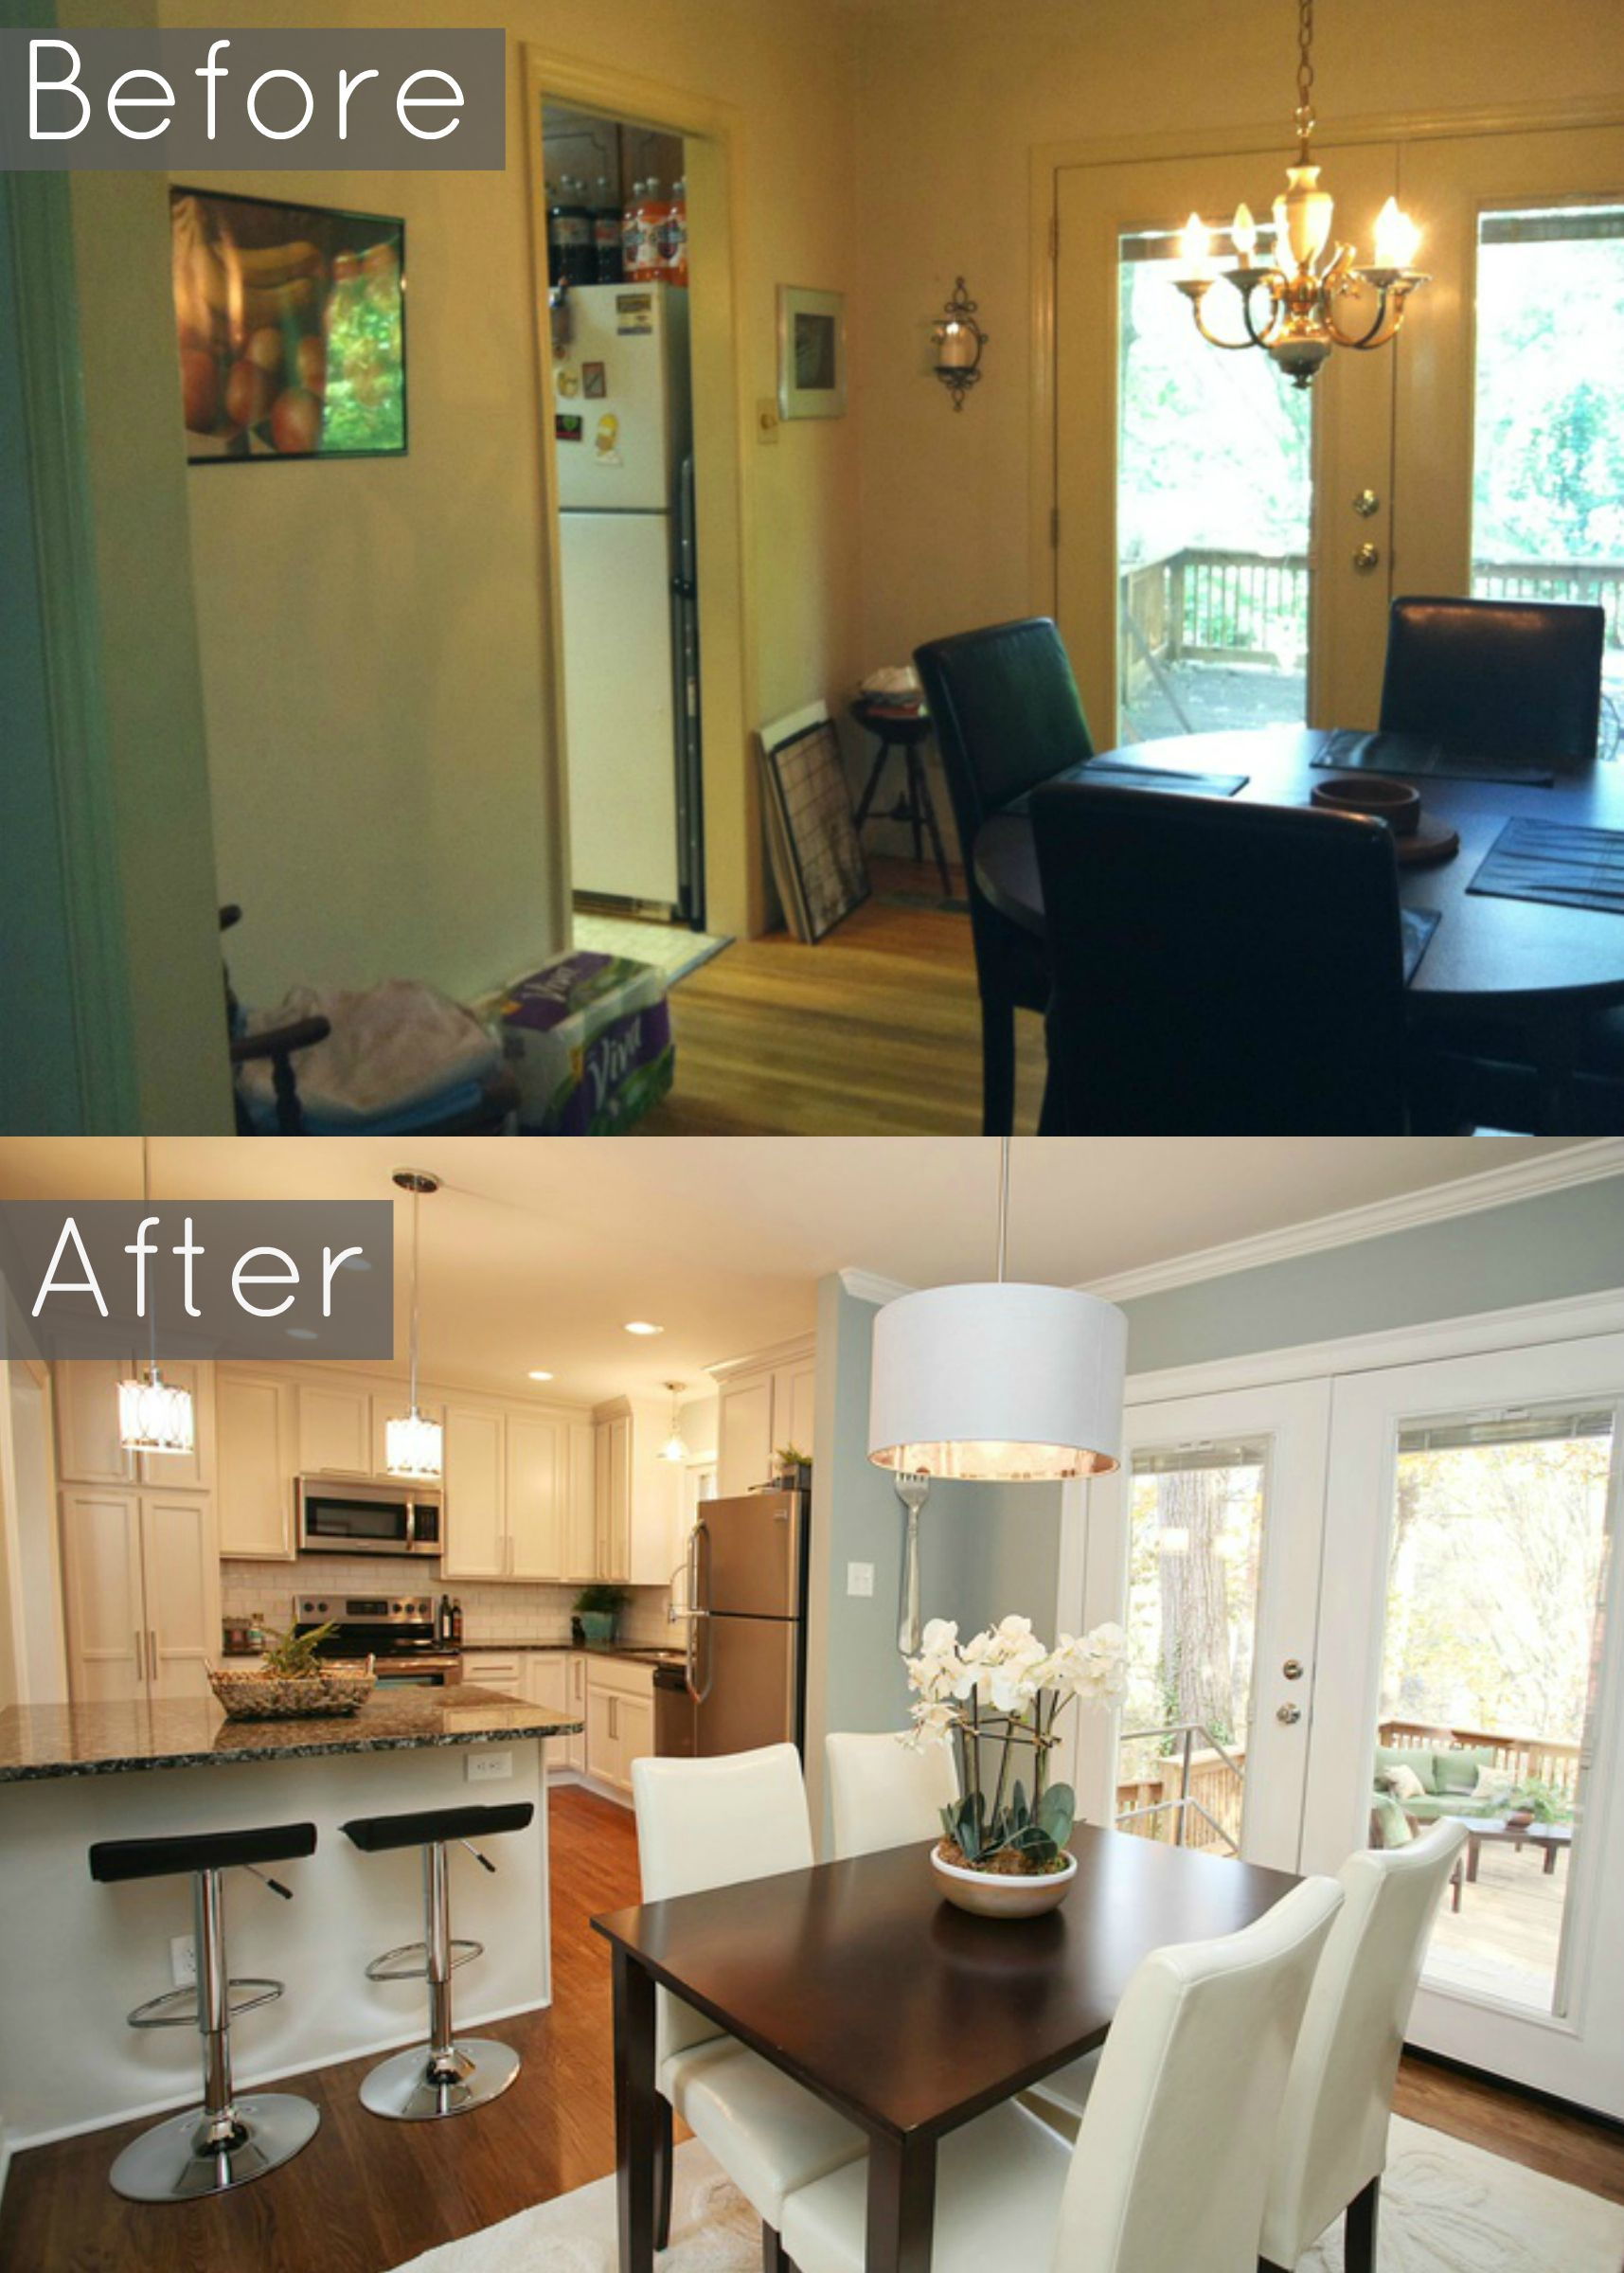 20+ small kitchen renovations before and after | house ideas | small